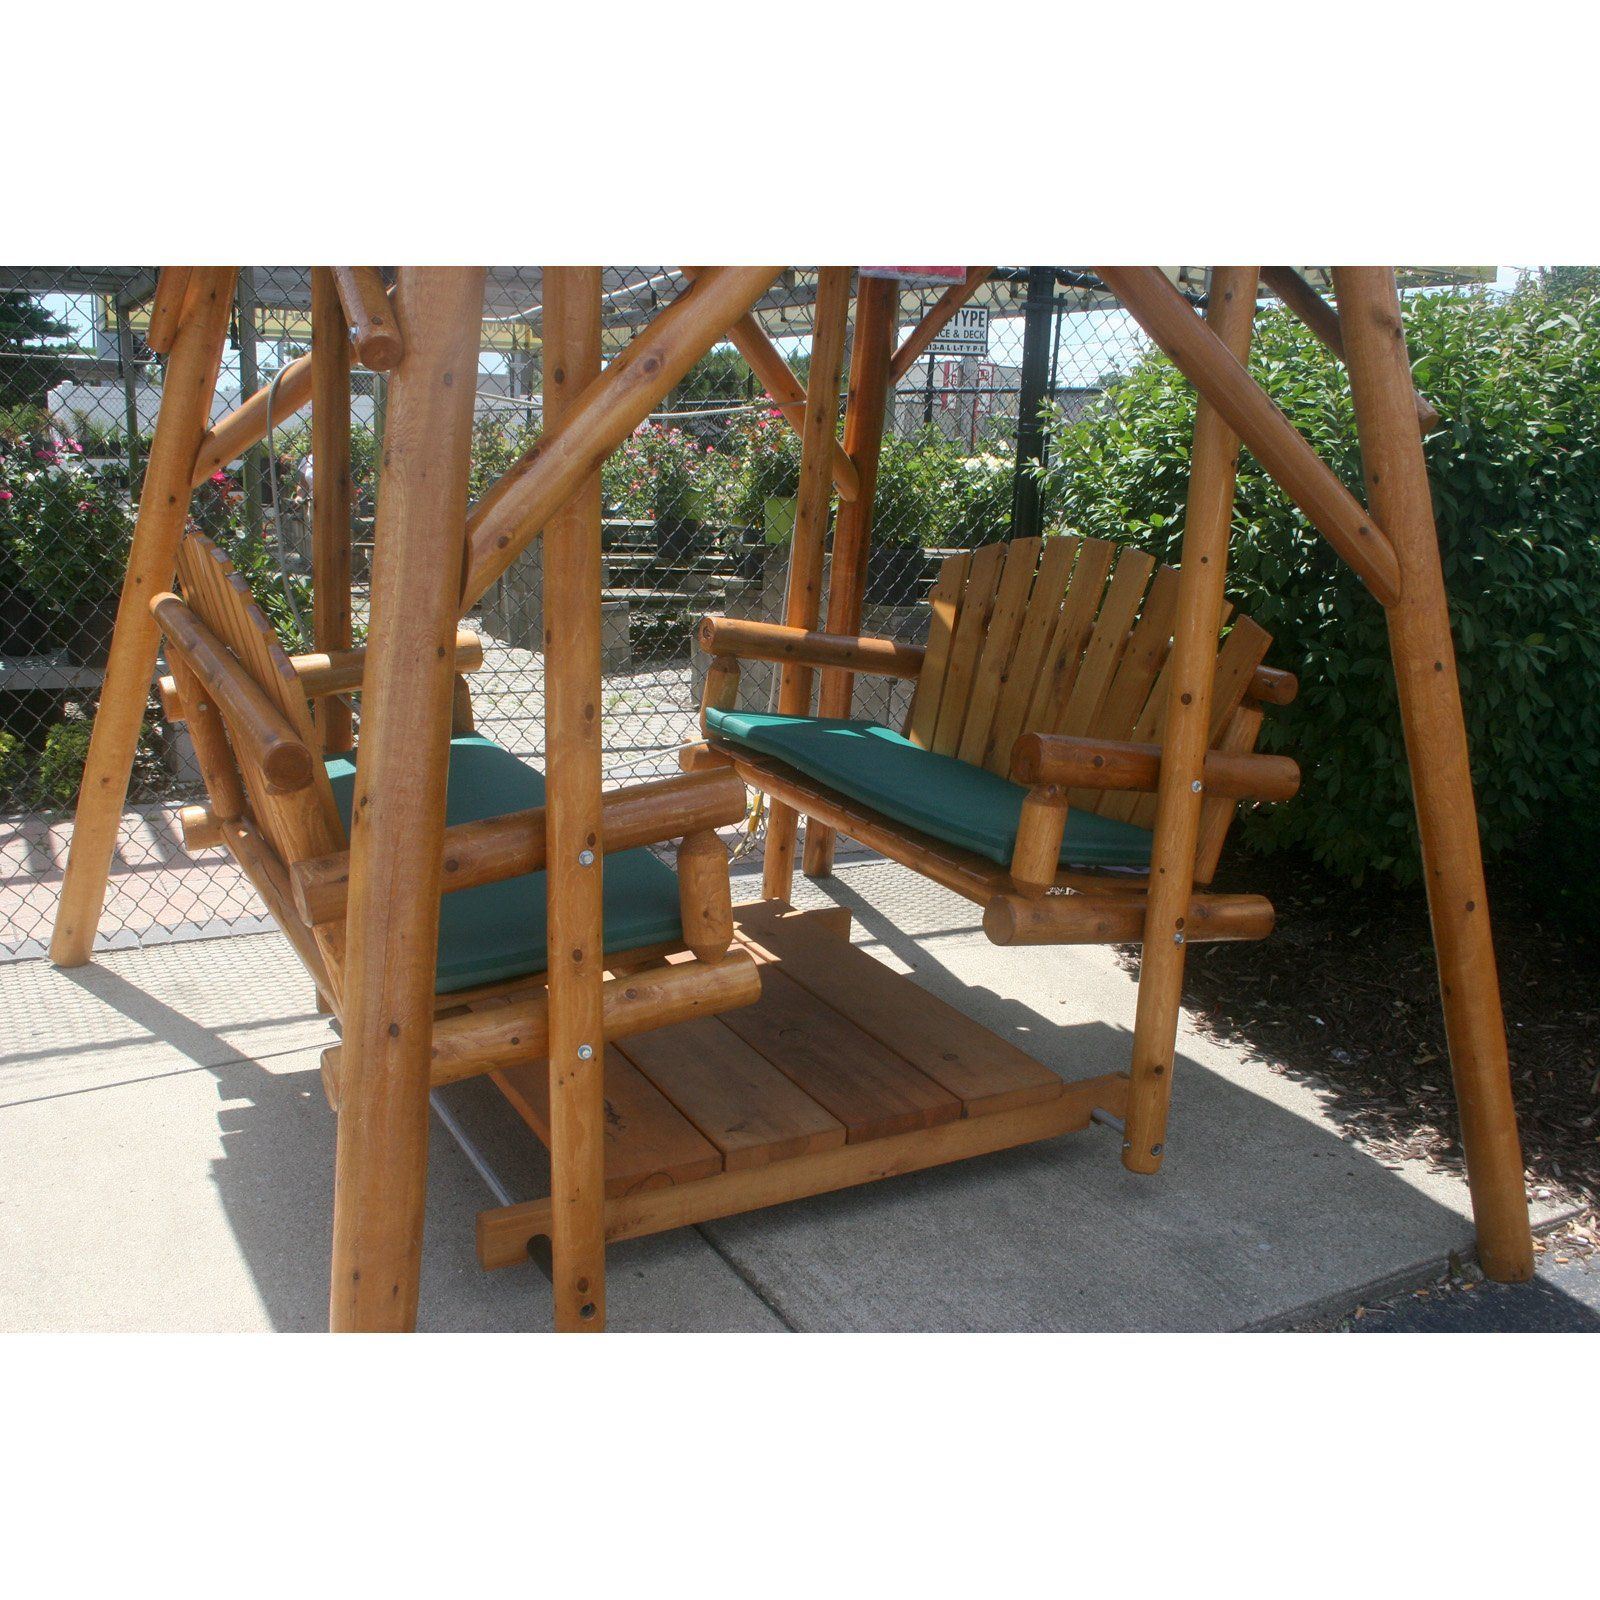 Adirondack double glider swing and frame canopy 359 99 hickory furniture